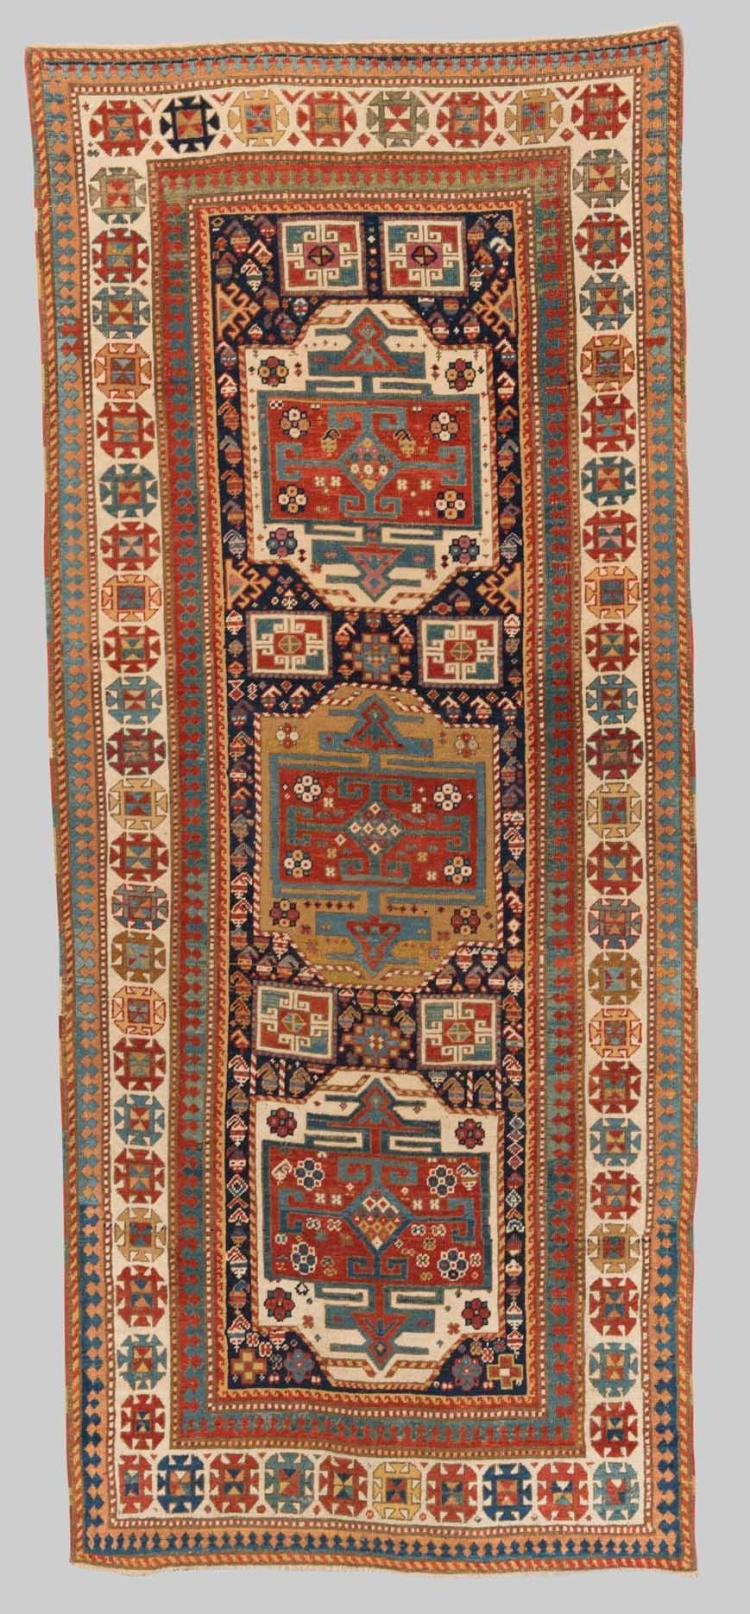 CAUCASIAN RUG, late 19th century; 8 ft. 1 in. x 3 ft. 5 in.